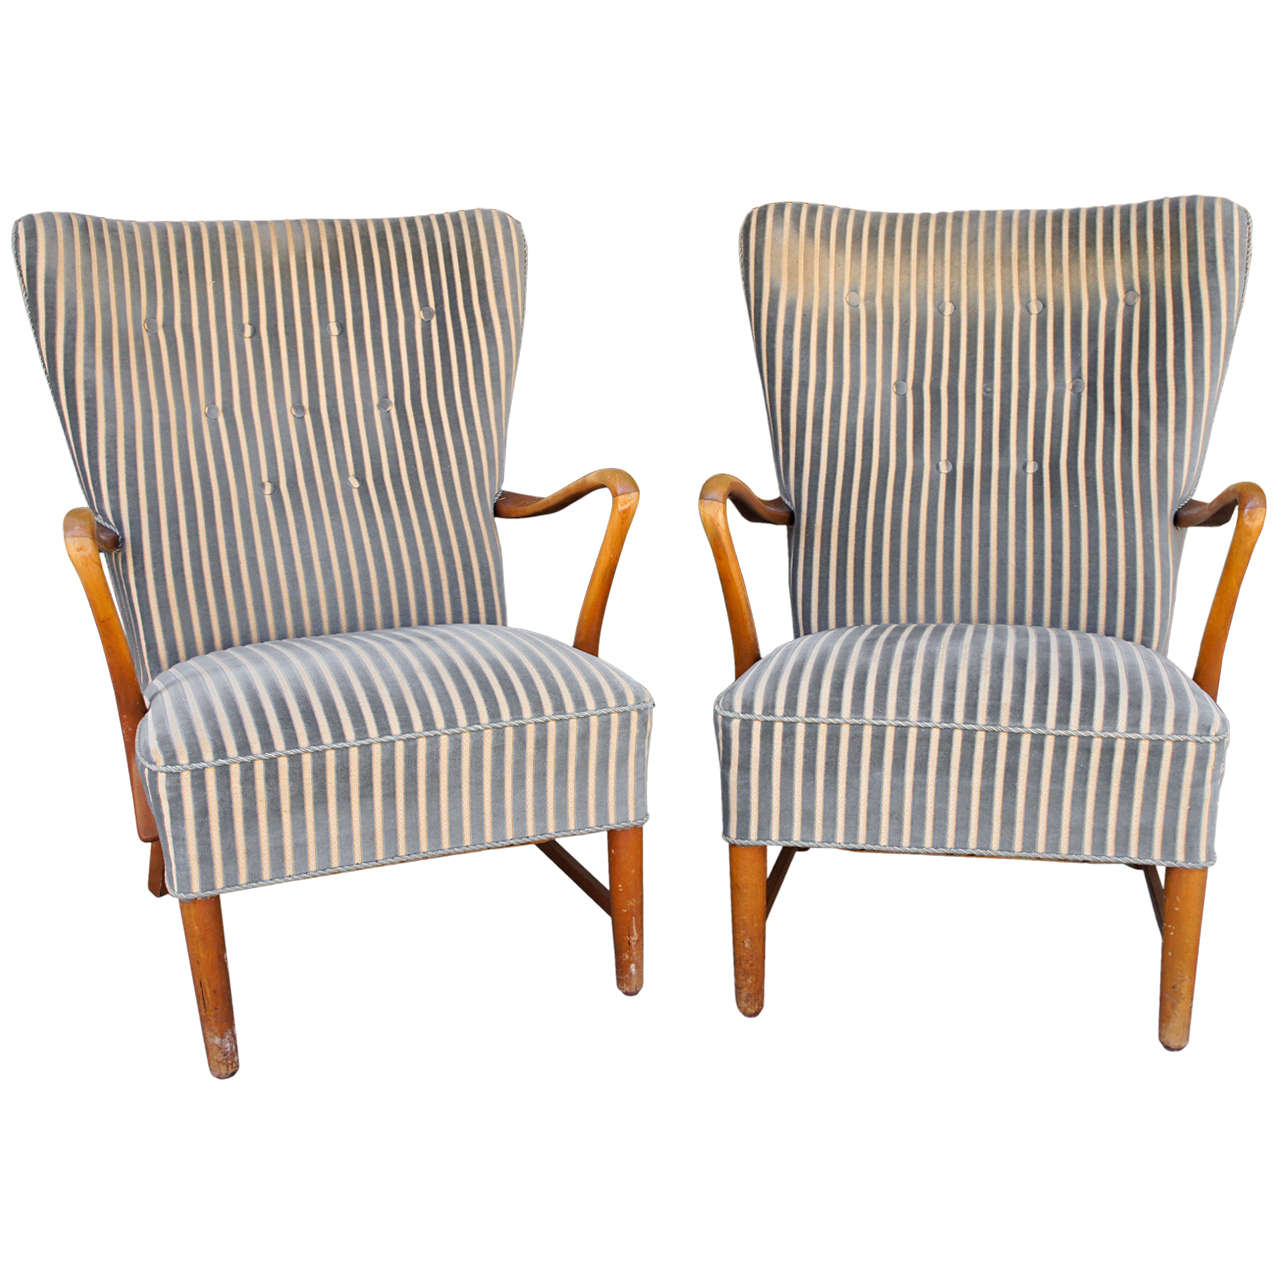 Pair Of Danish Modern Armchairs In Striped Fabric At 1stdibs